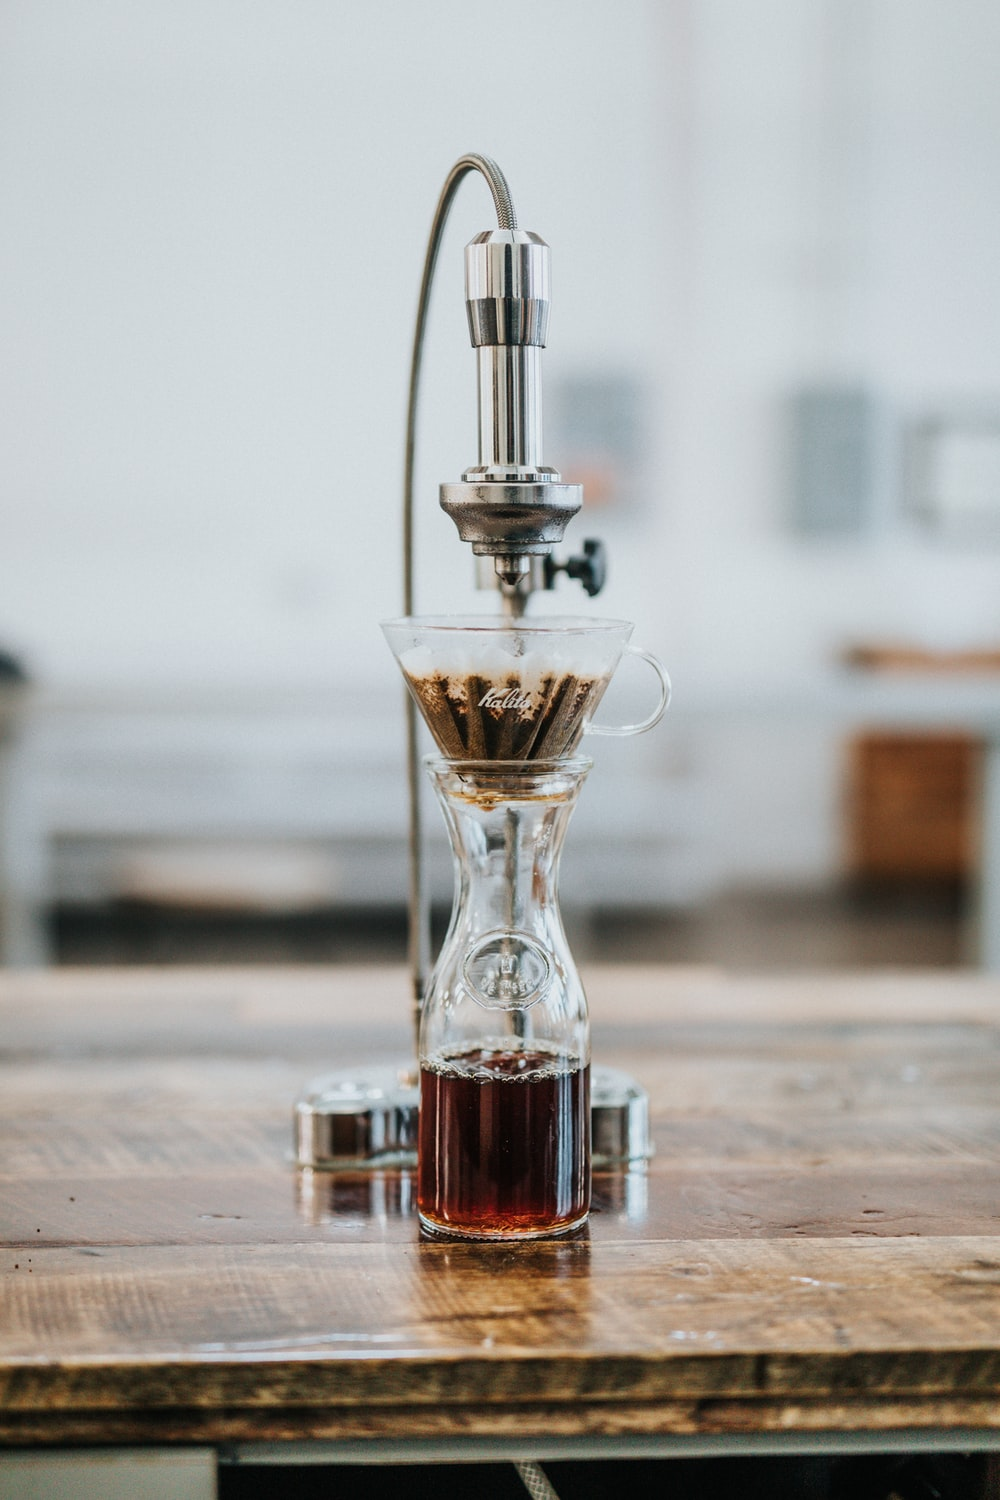 selective focus photography of coffee mixer on table